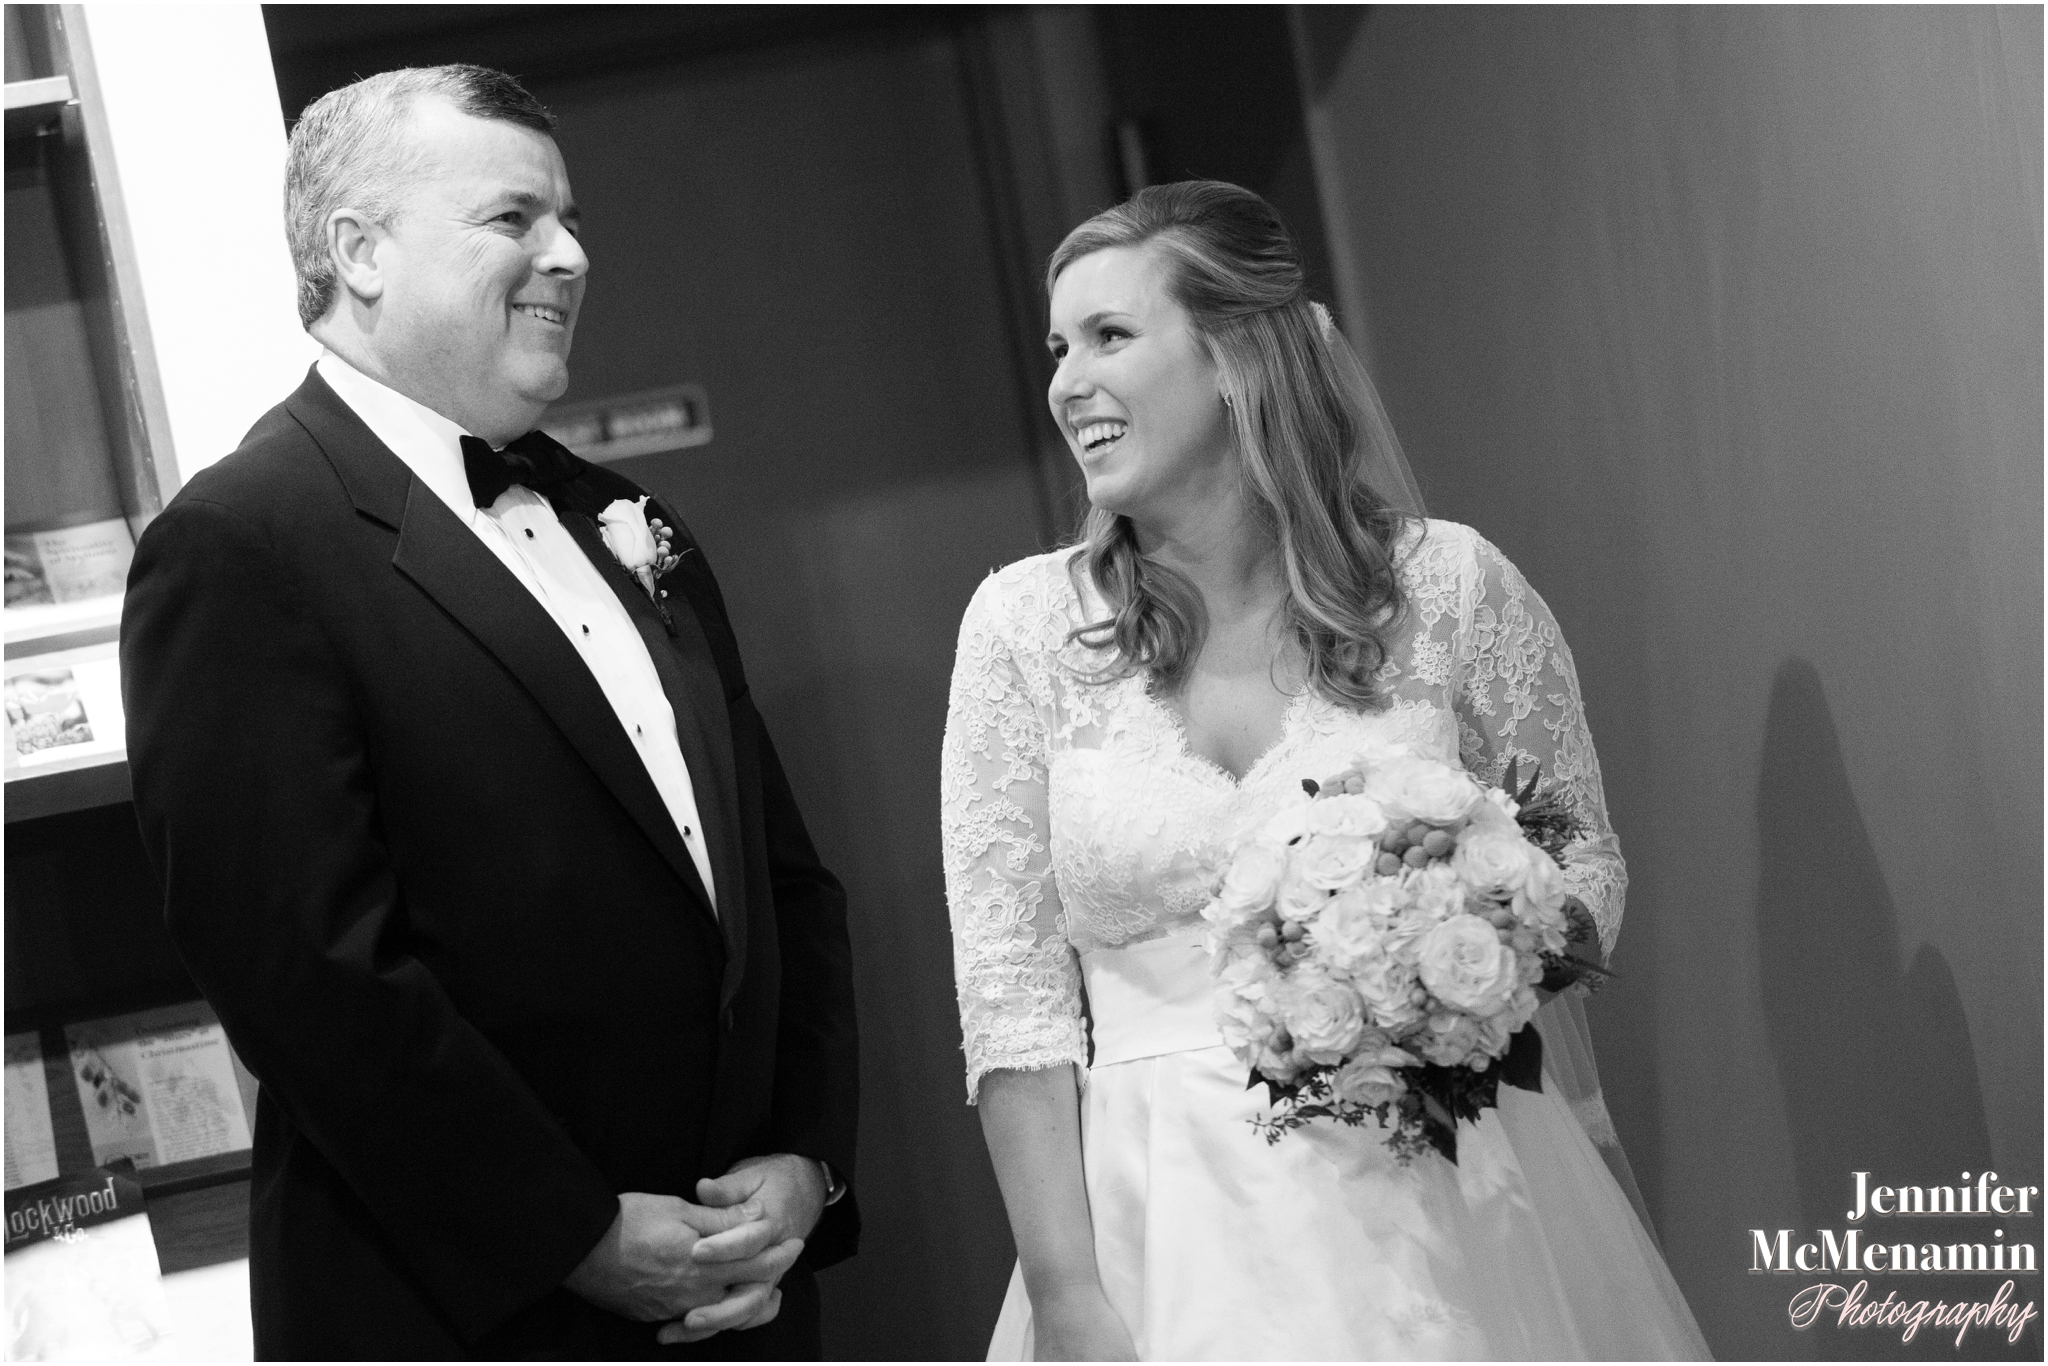 0035_RyanClemmens_01028-0268_JenniferMcMenaminPhotography_Immaculate-Conception-Church_The-Cloisters_Baltimore-wedding-photography_Baltimore-wedding-photographer